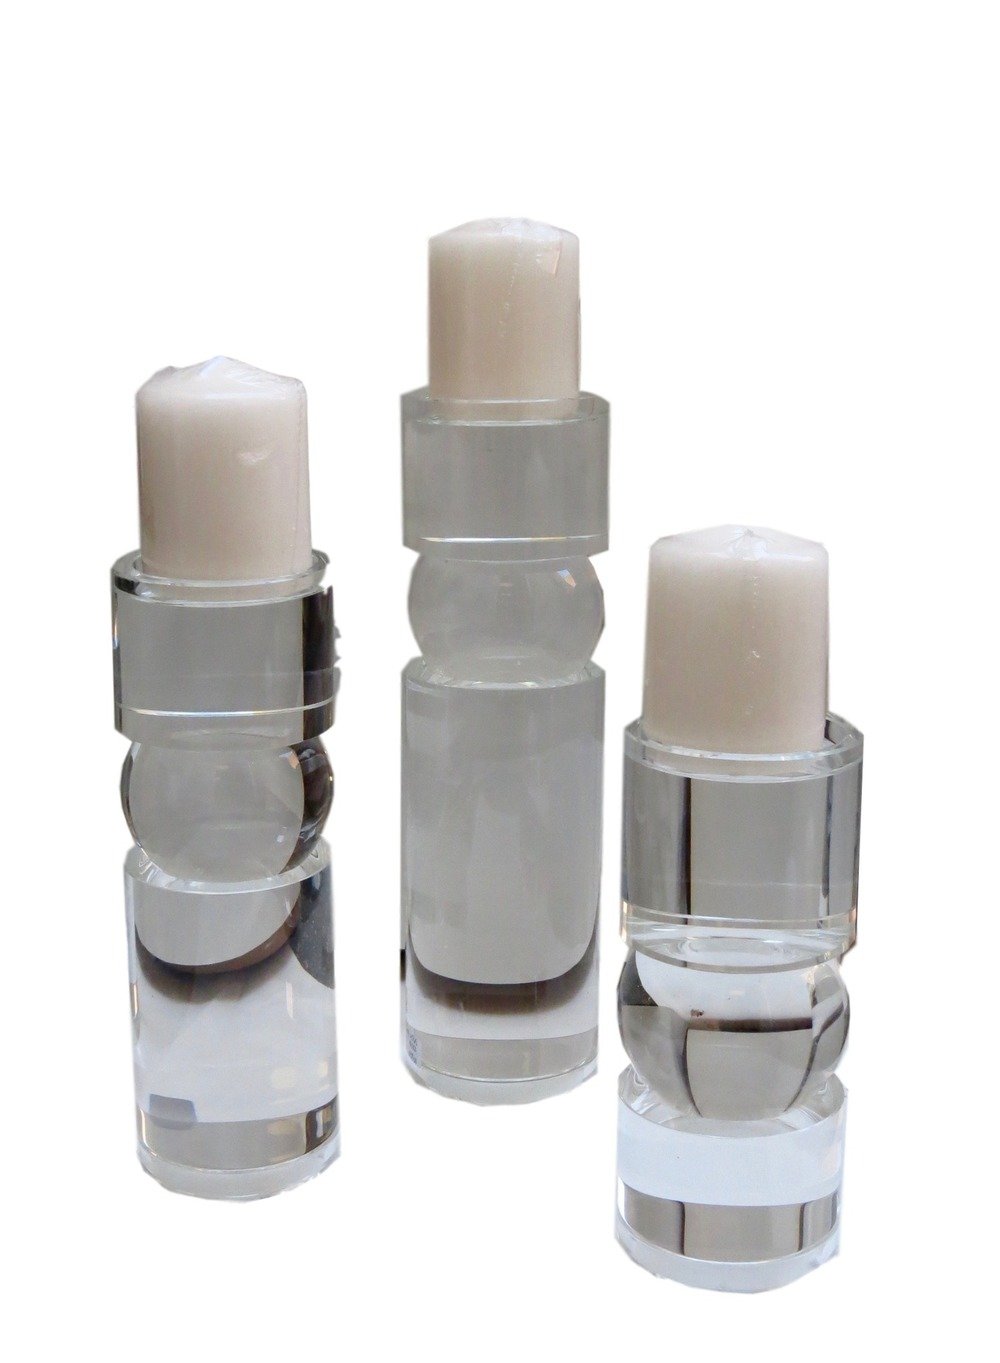 Cylinder/Ball Crystal Candle Stand  4dx9h  GV8.81567  4dx11h  GV8.81566  4dx14h  GV8.81565  Candles Sold Separately